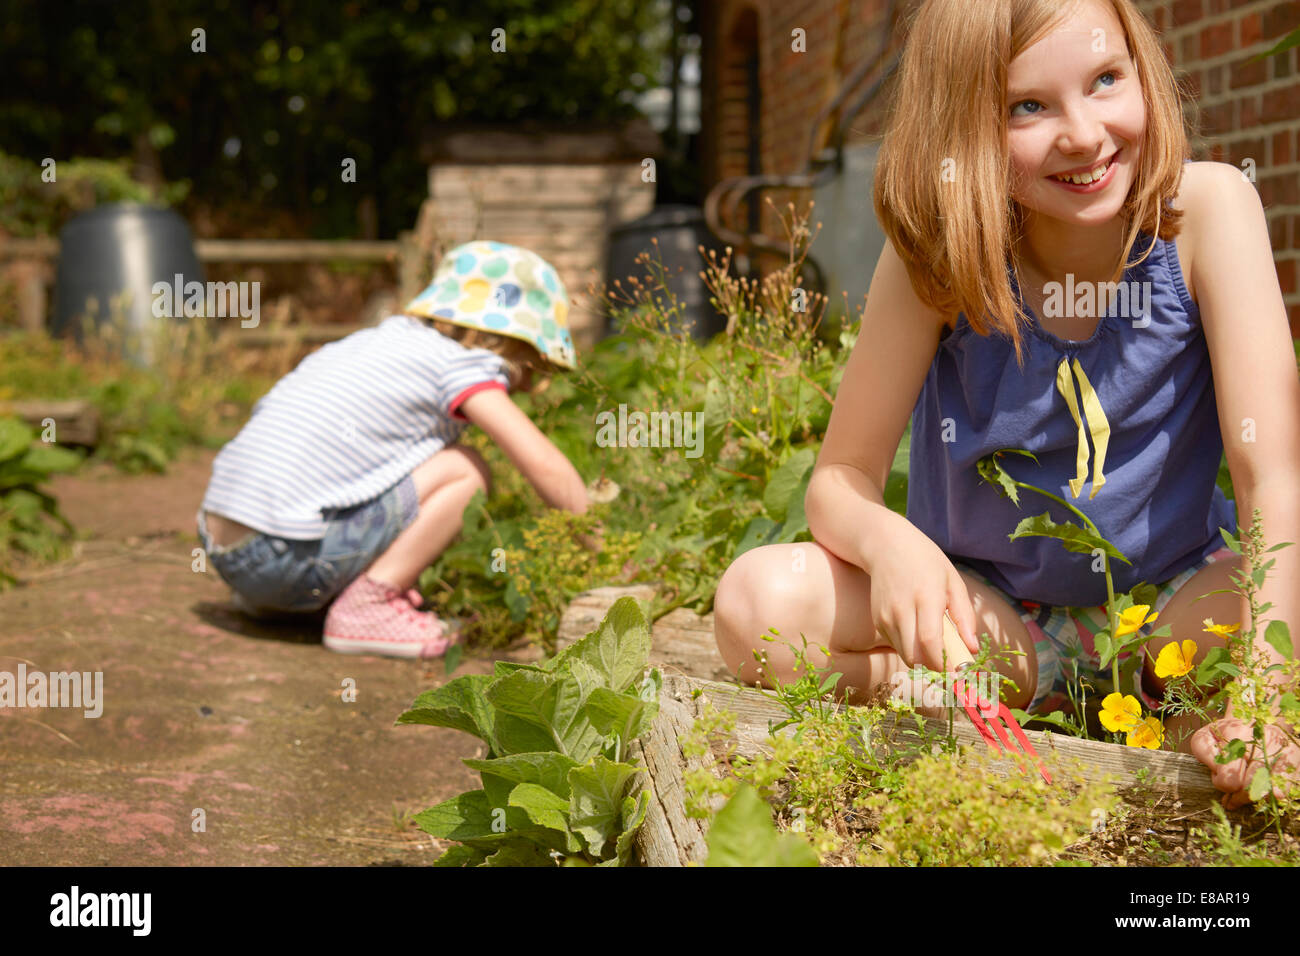 Two sisters digging in garden - Stock Image